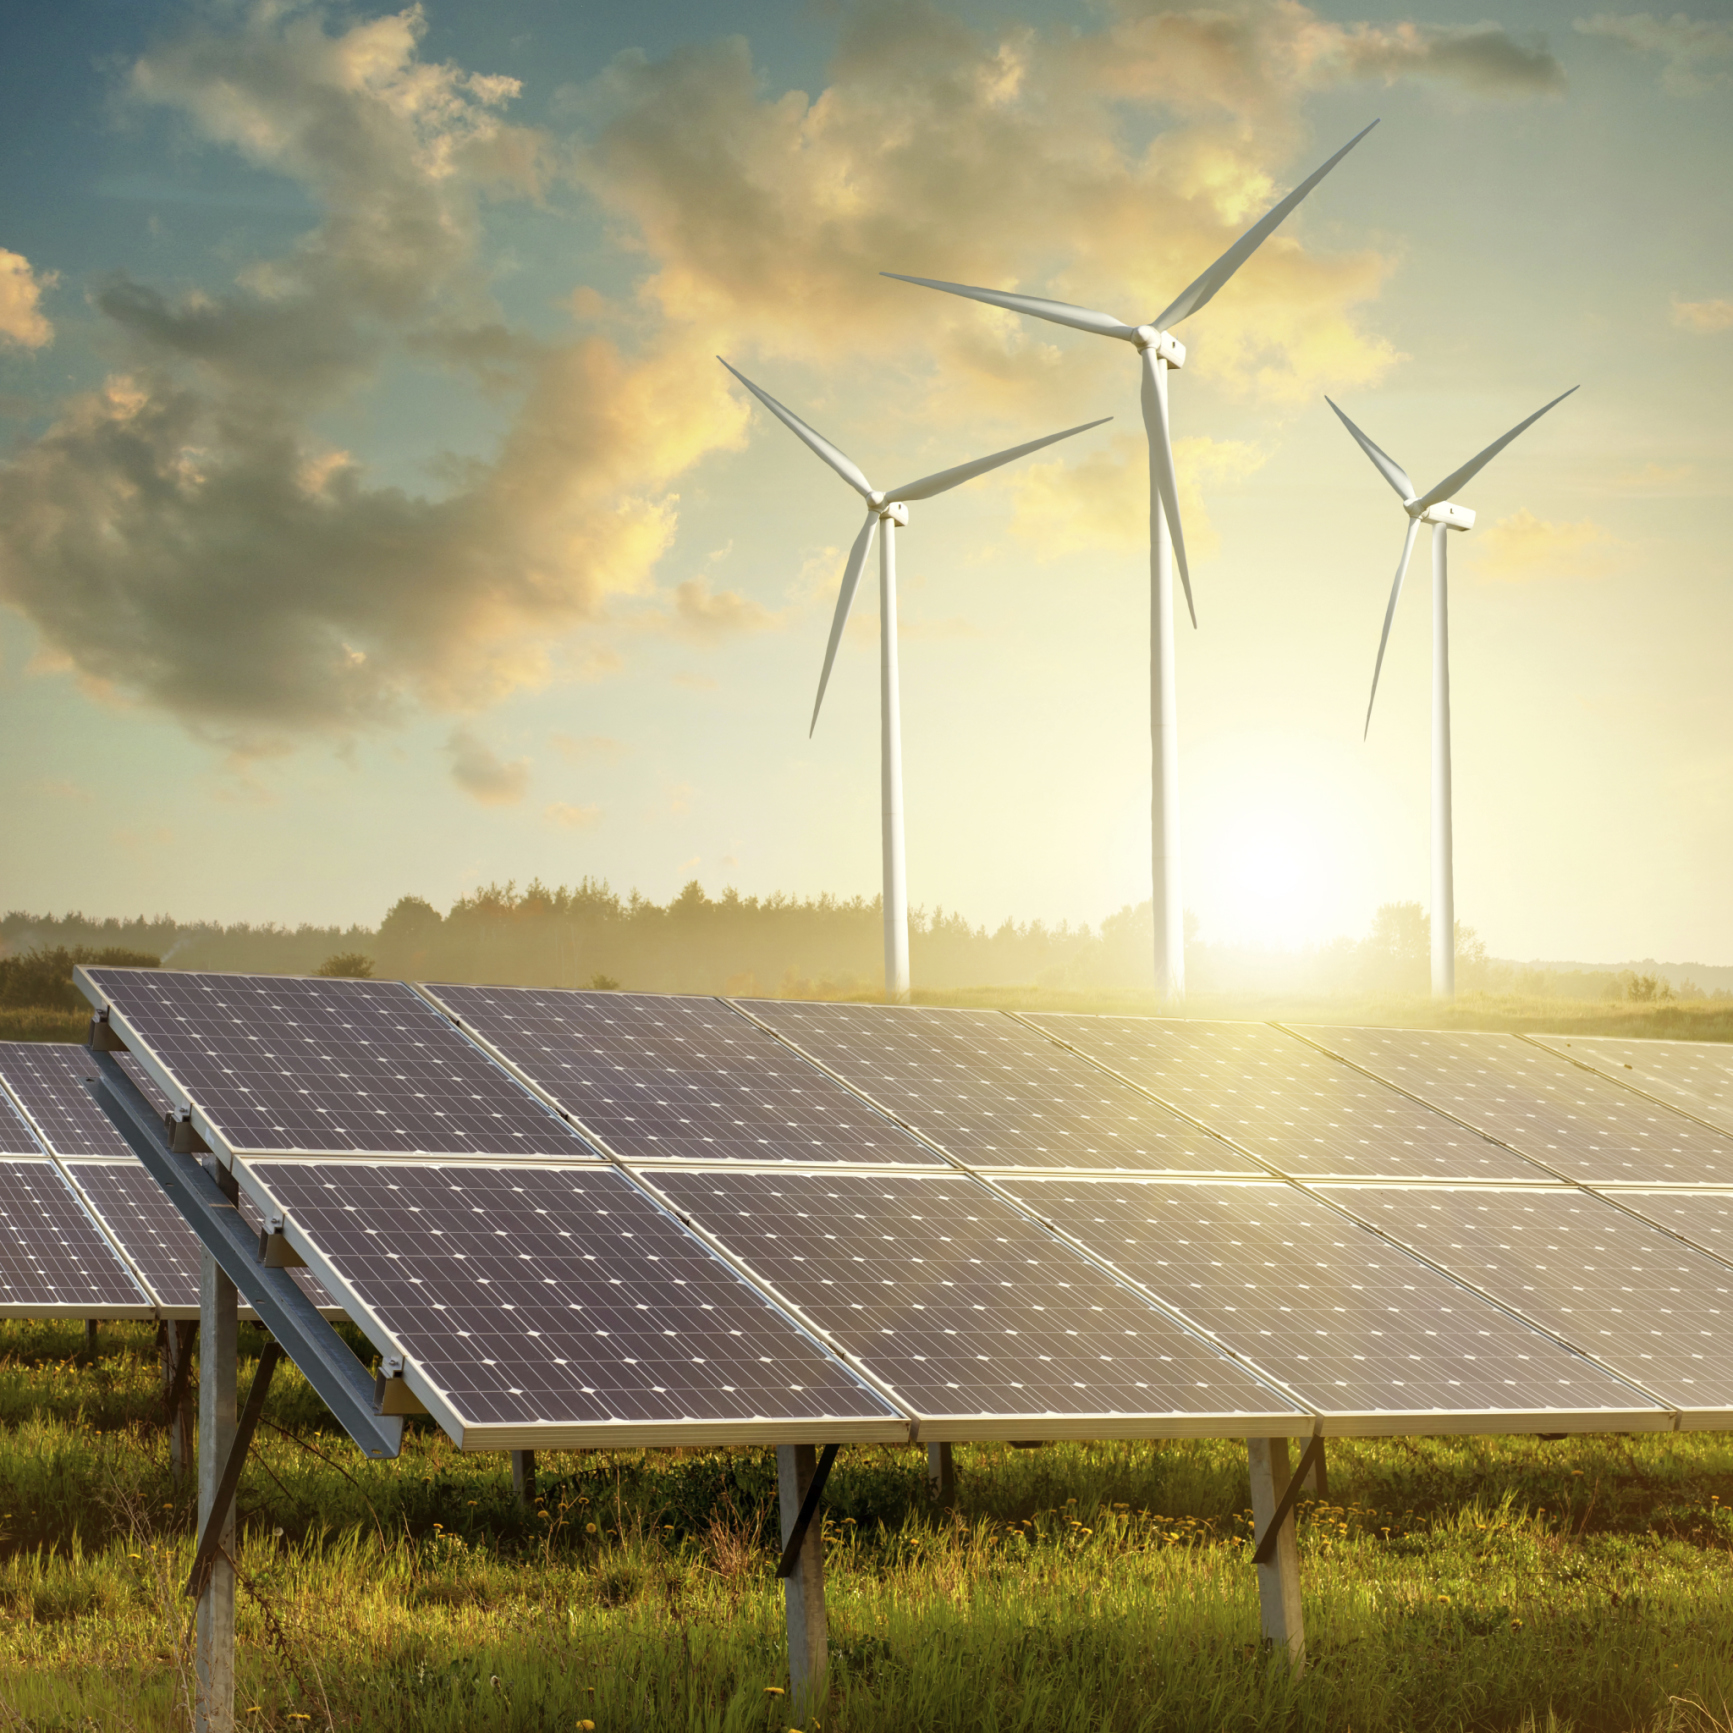 Africa gets US $200 million fund to scale up renewable energy projects